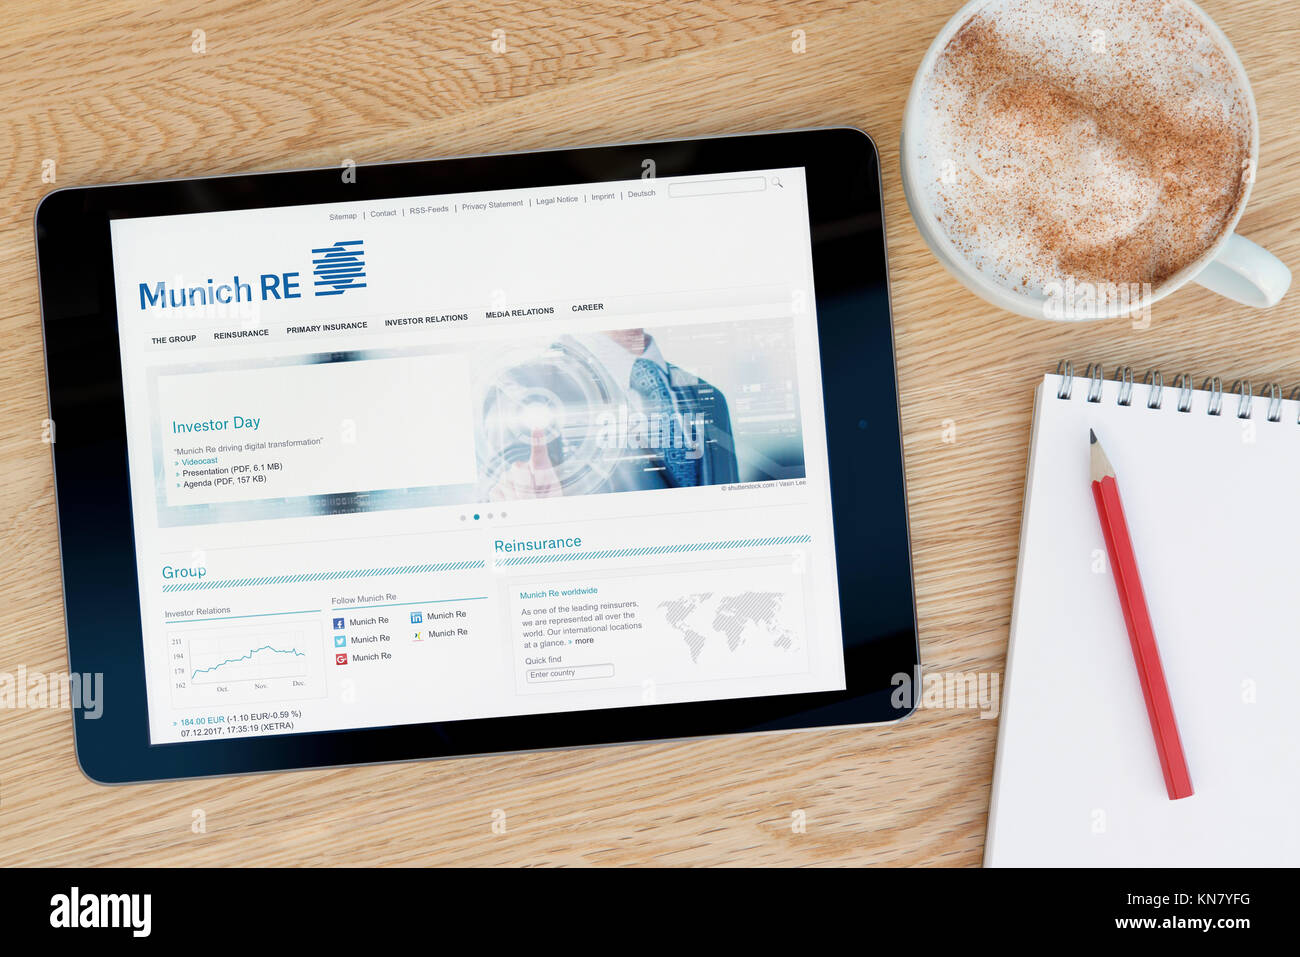 The Munich RE website on an iPad tablet device which rests on a wooden table beside a notepad and pencil and a cup - Stock Image